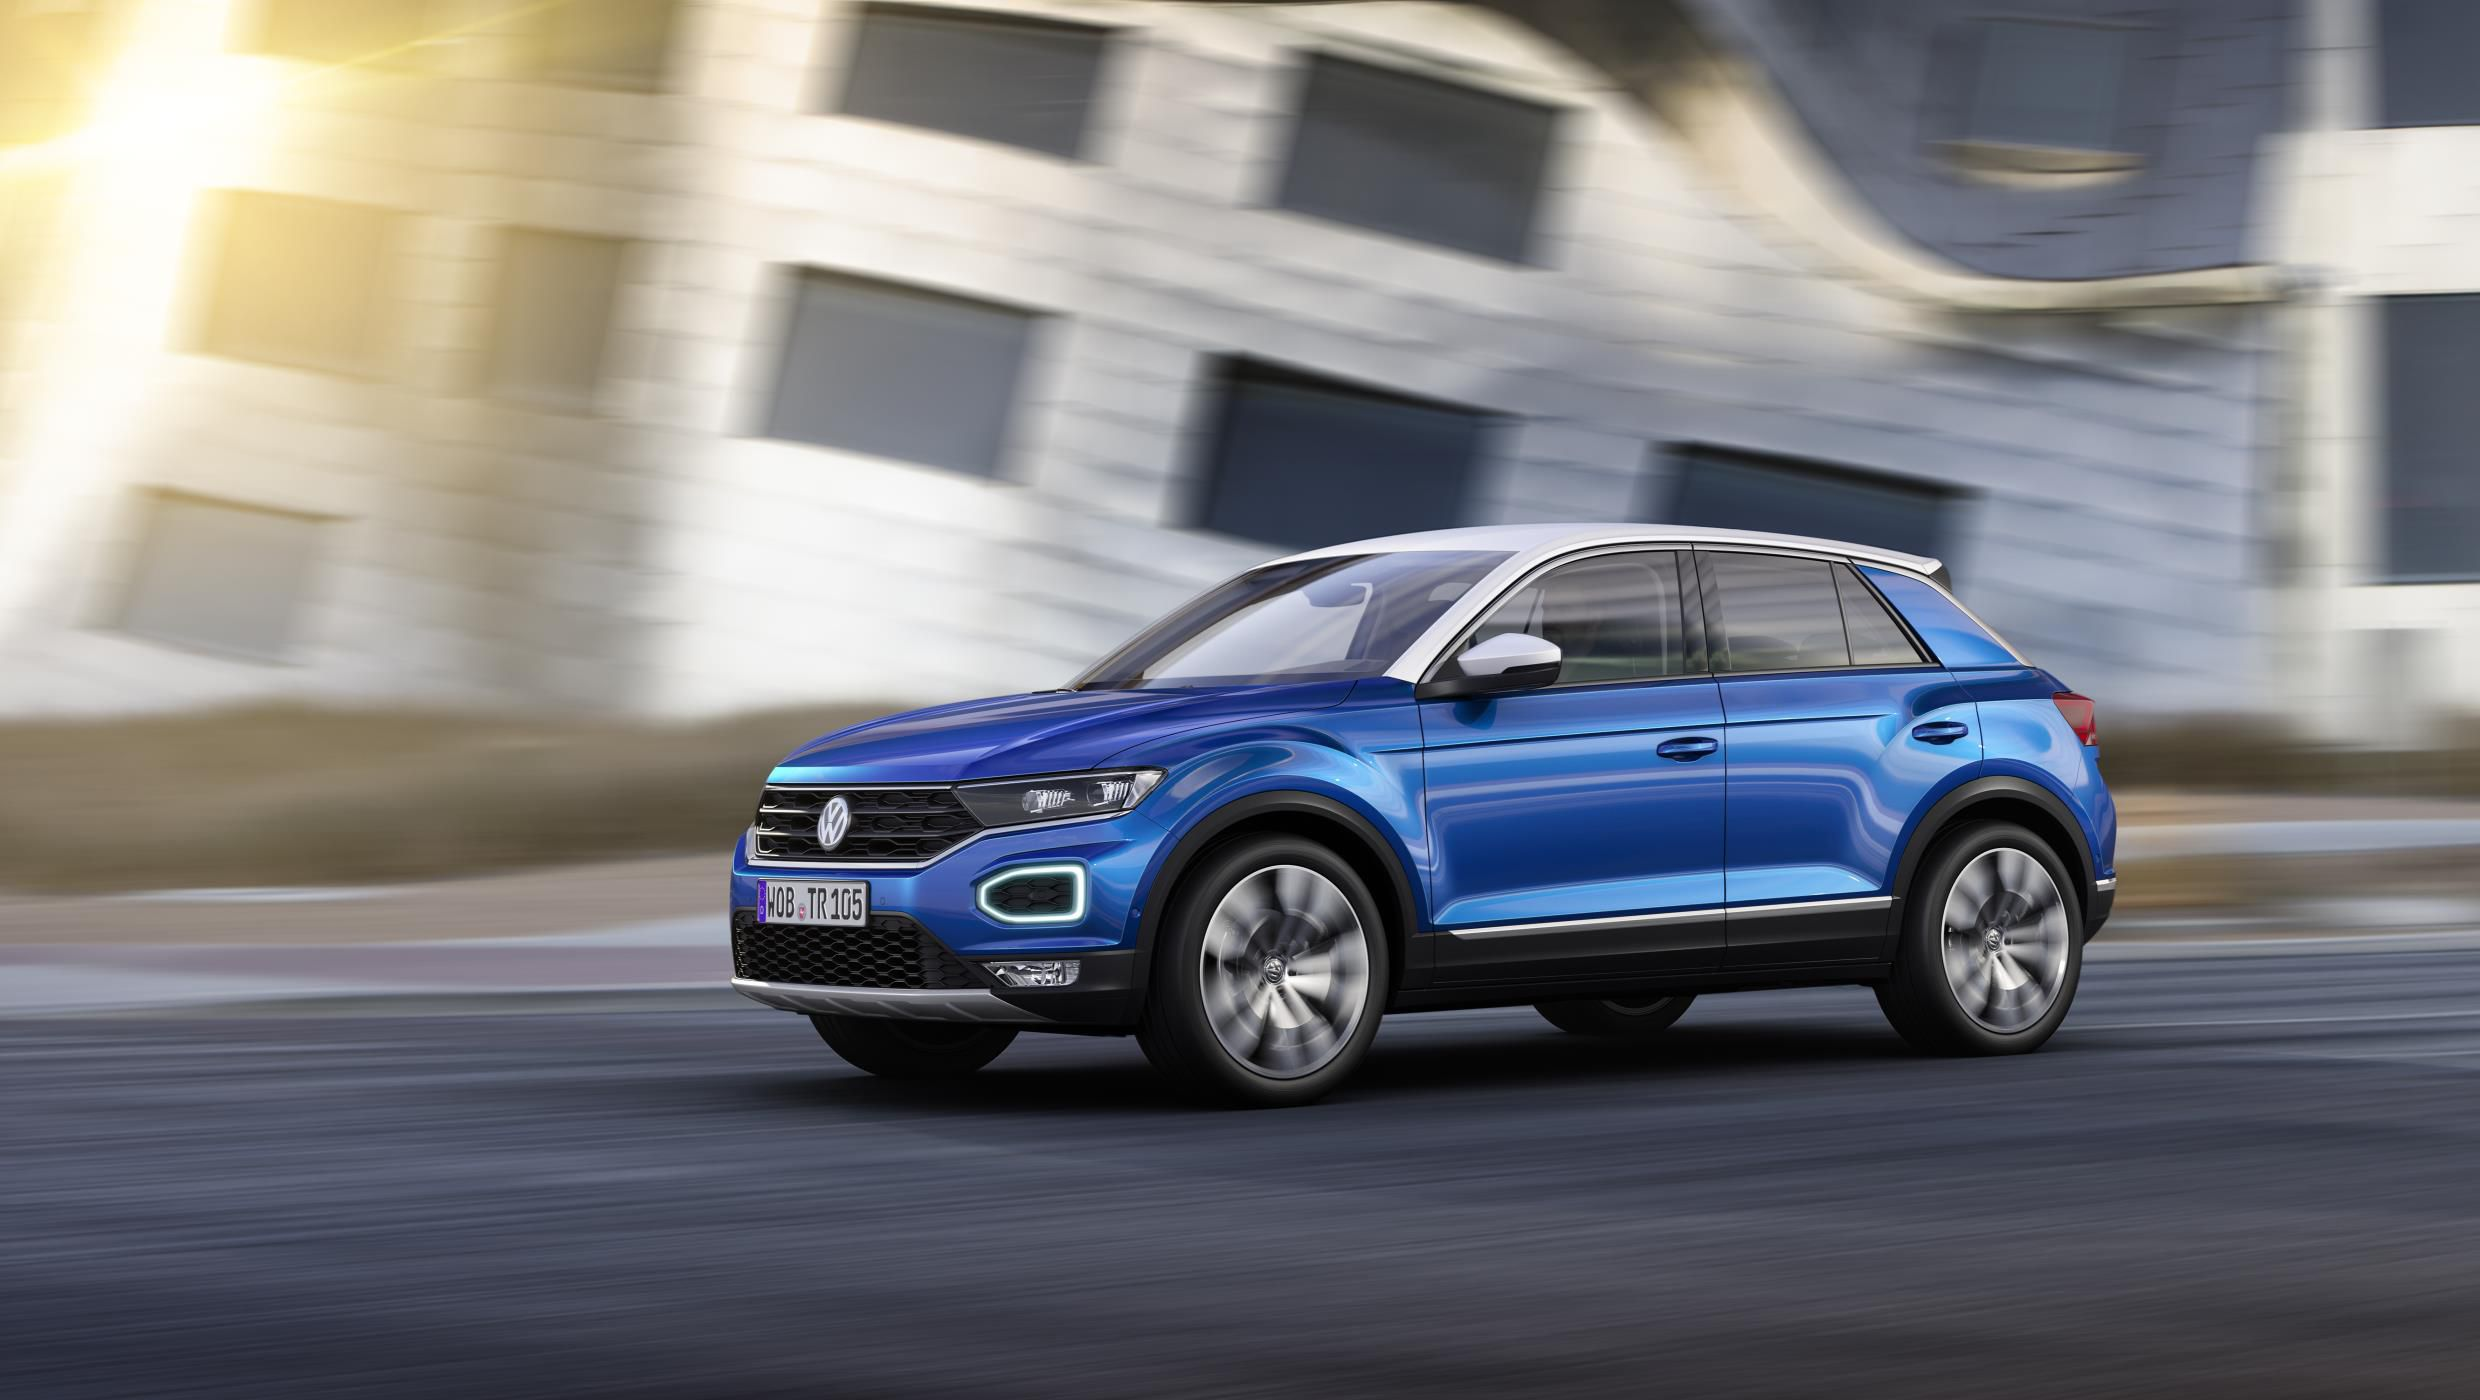 Blue Volkswagen T-Roc with silver roof driving down a road with everything but the car out of focus